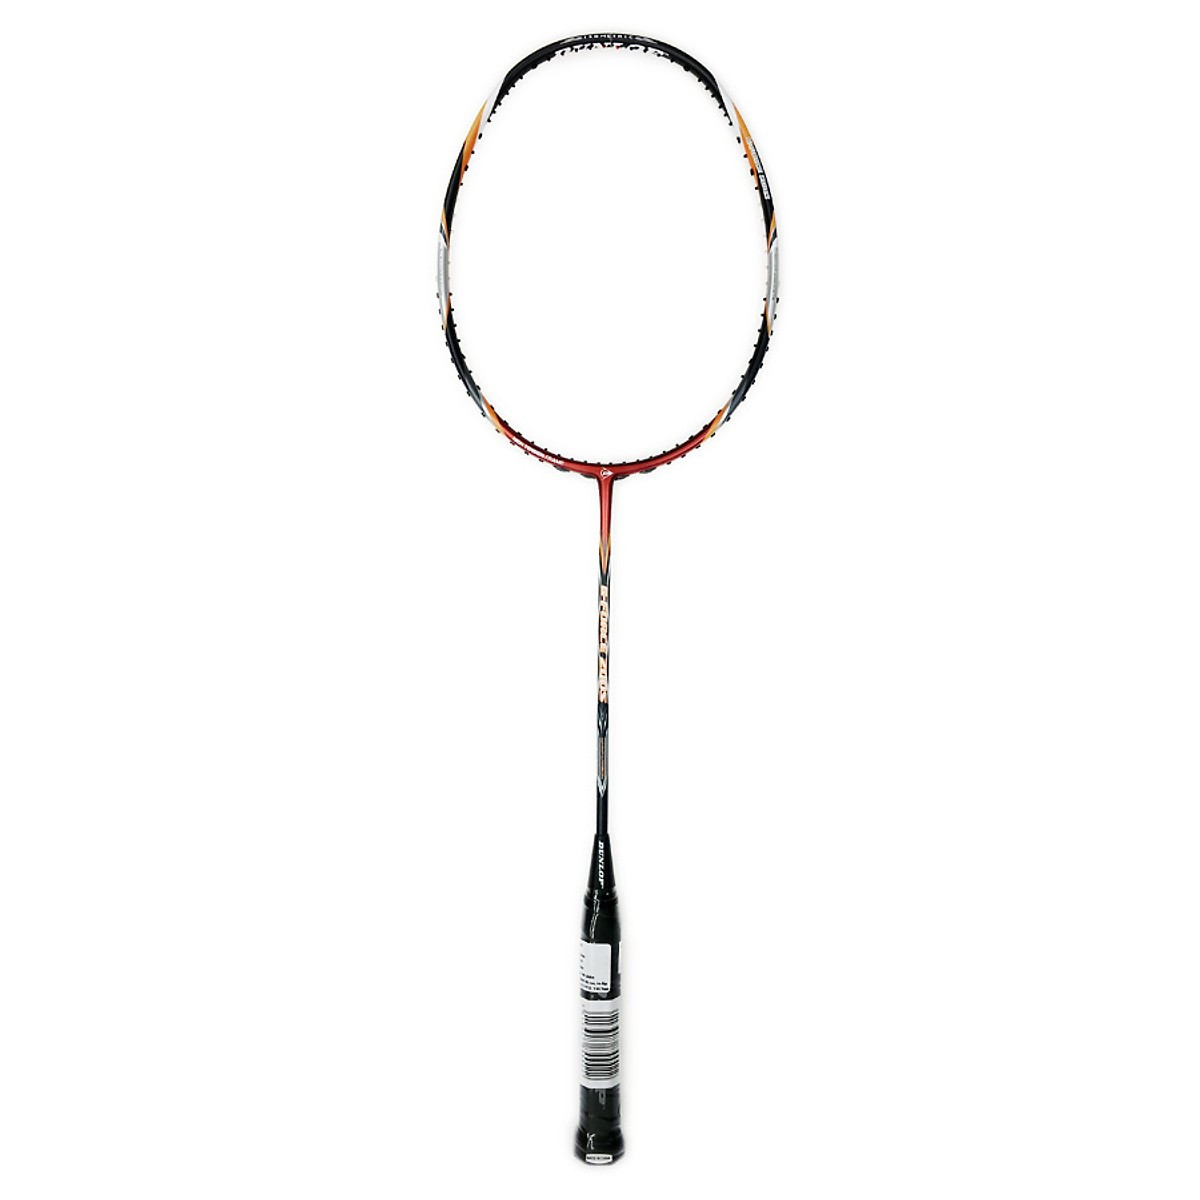 Dunlop Badminton G-Force 200S